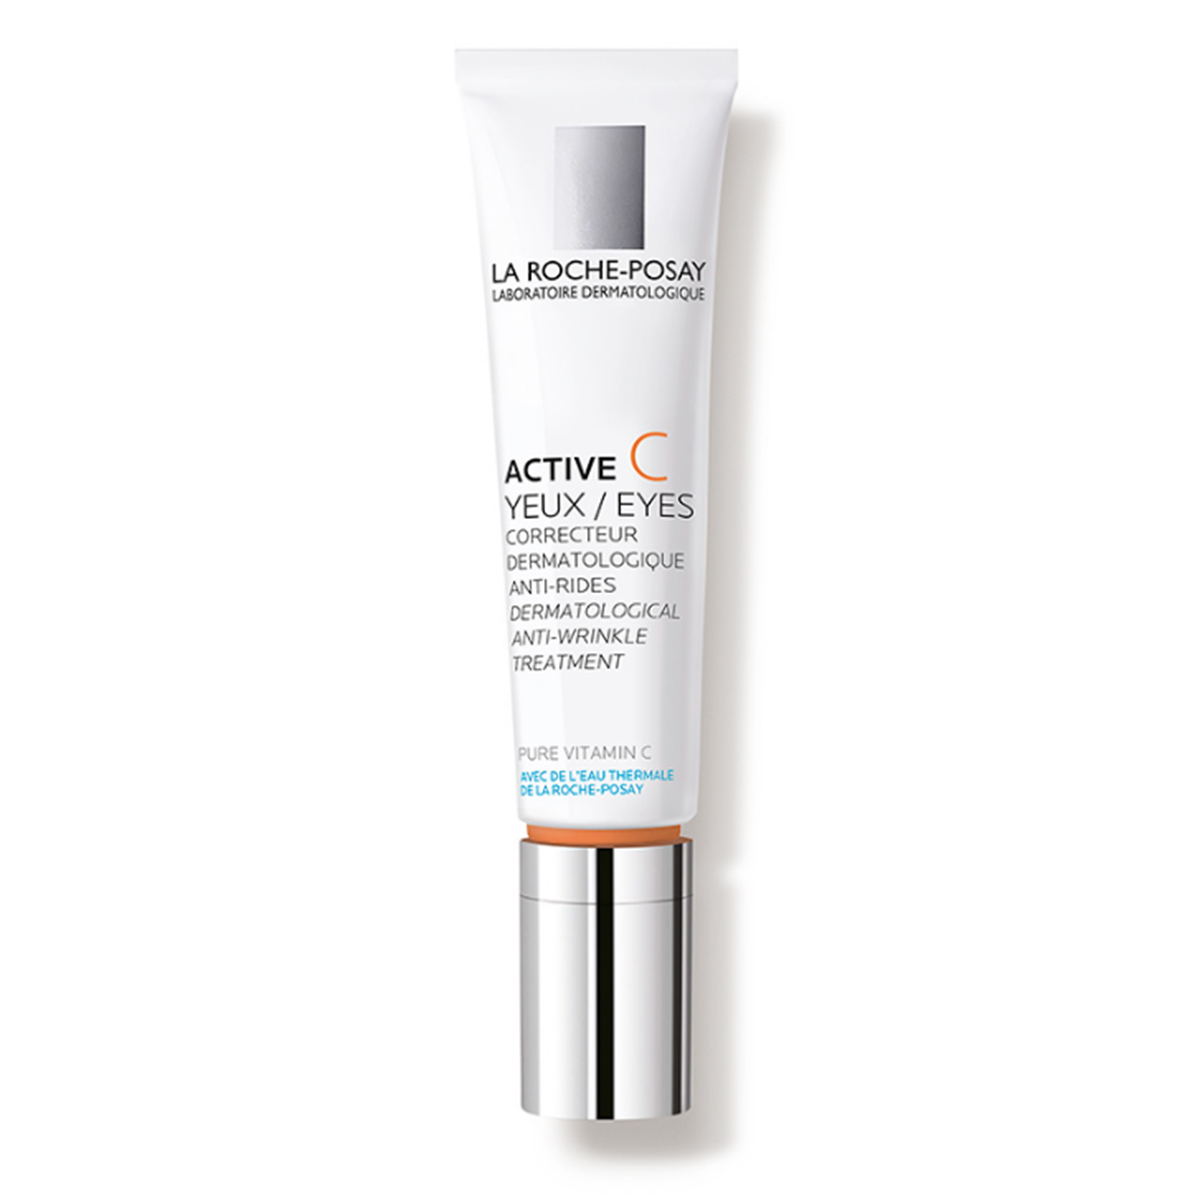 la roche-posay eye cream